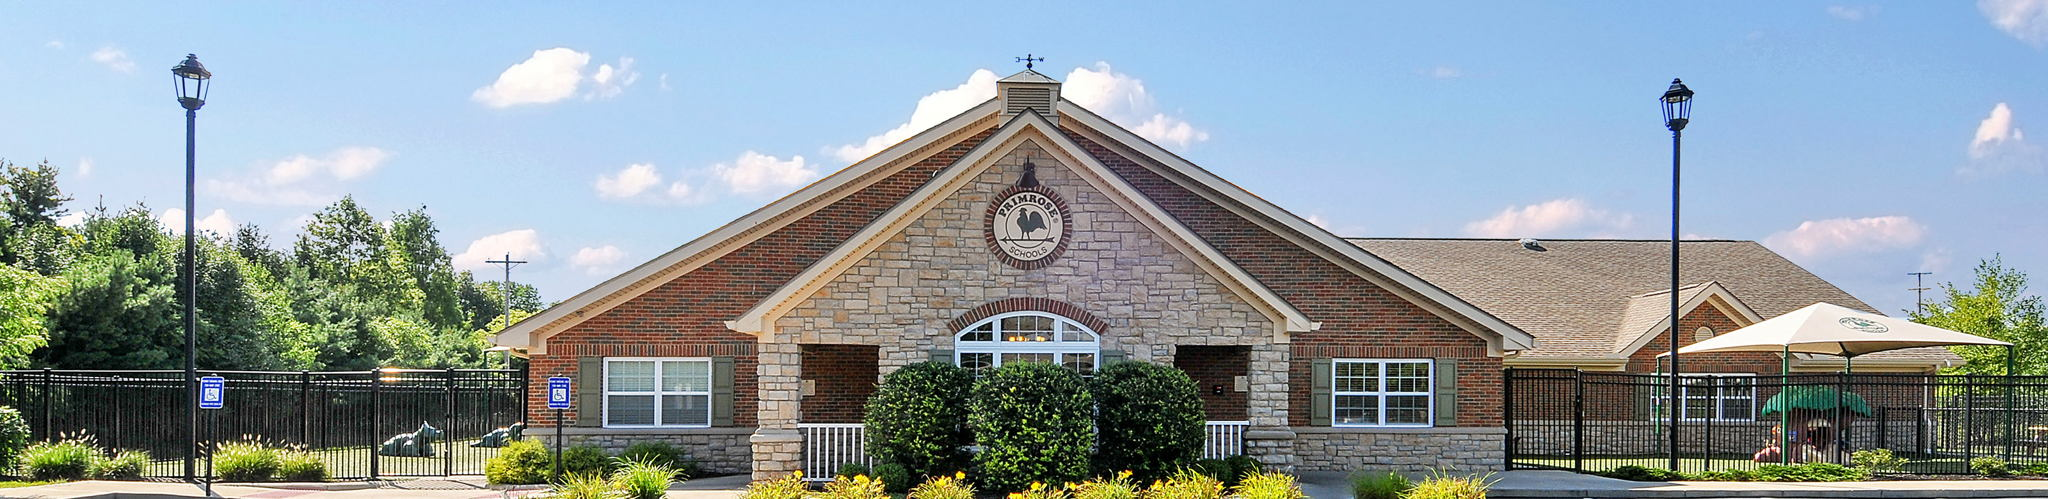 Exterior of a Primrose School of Pickerington